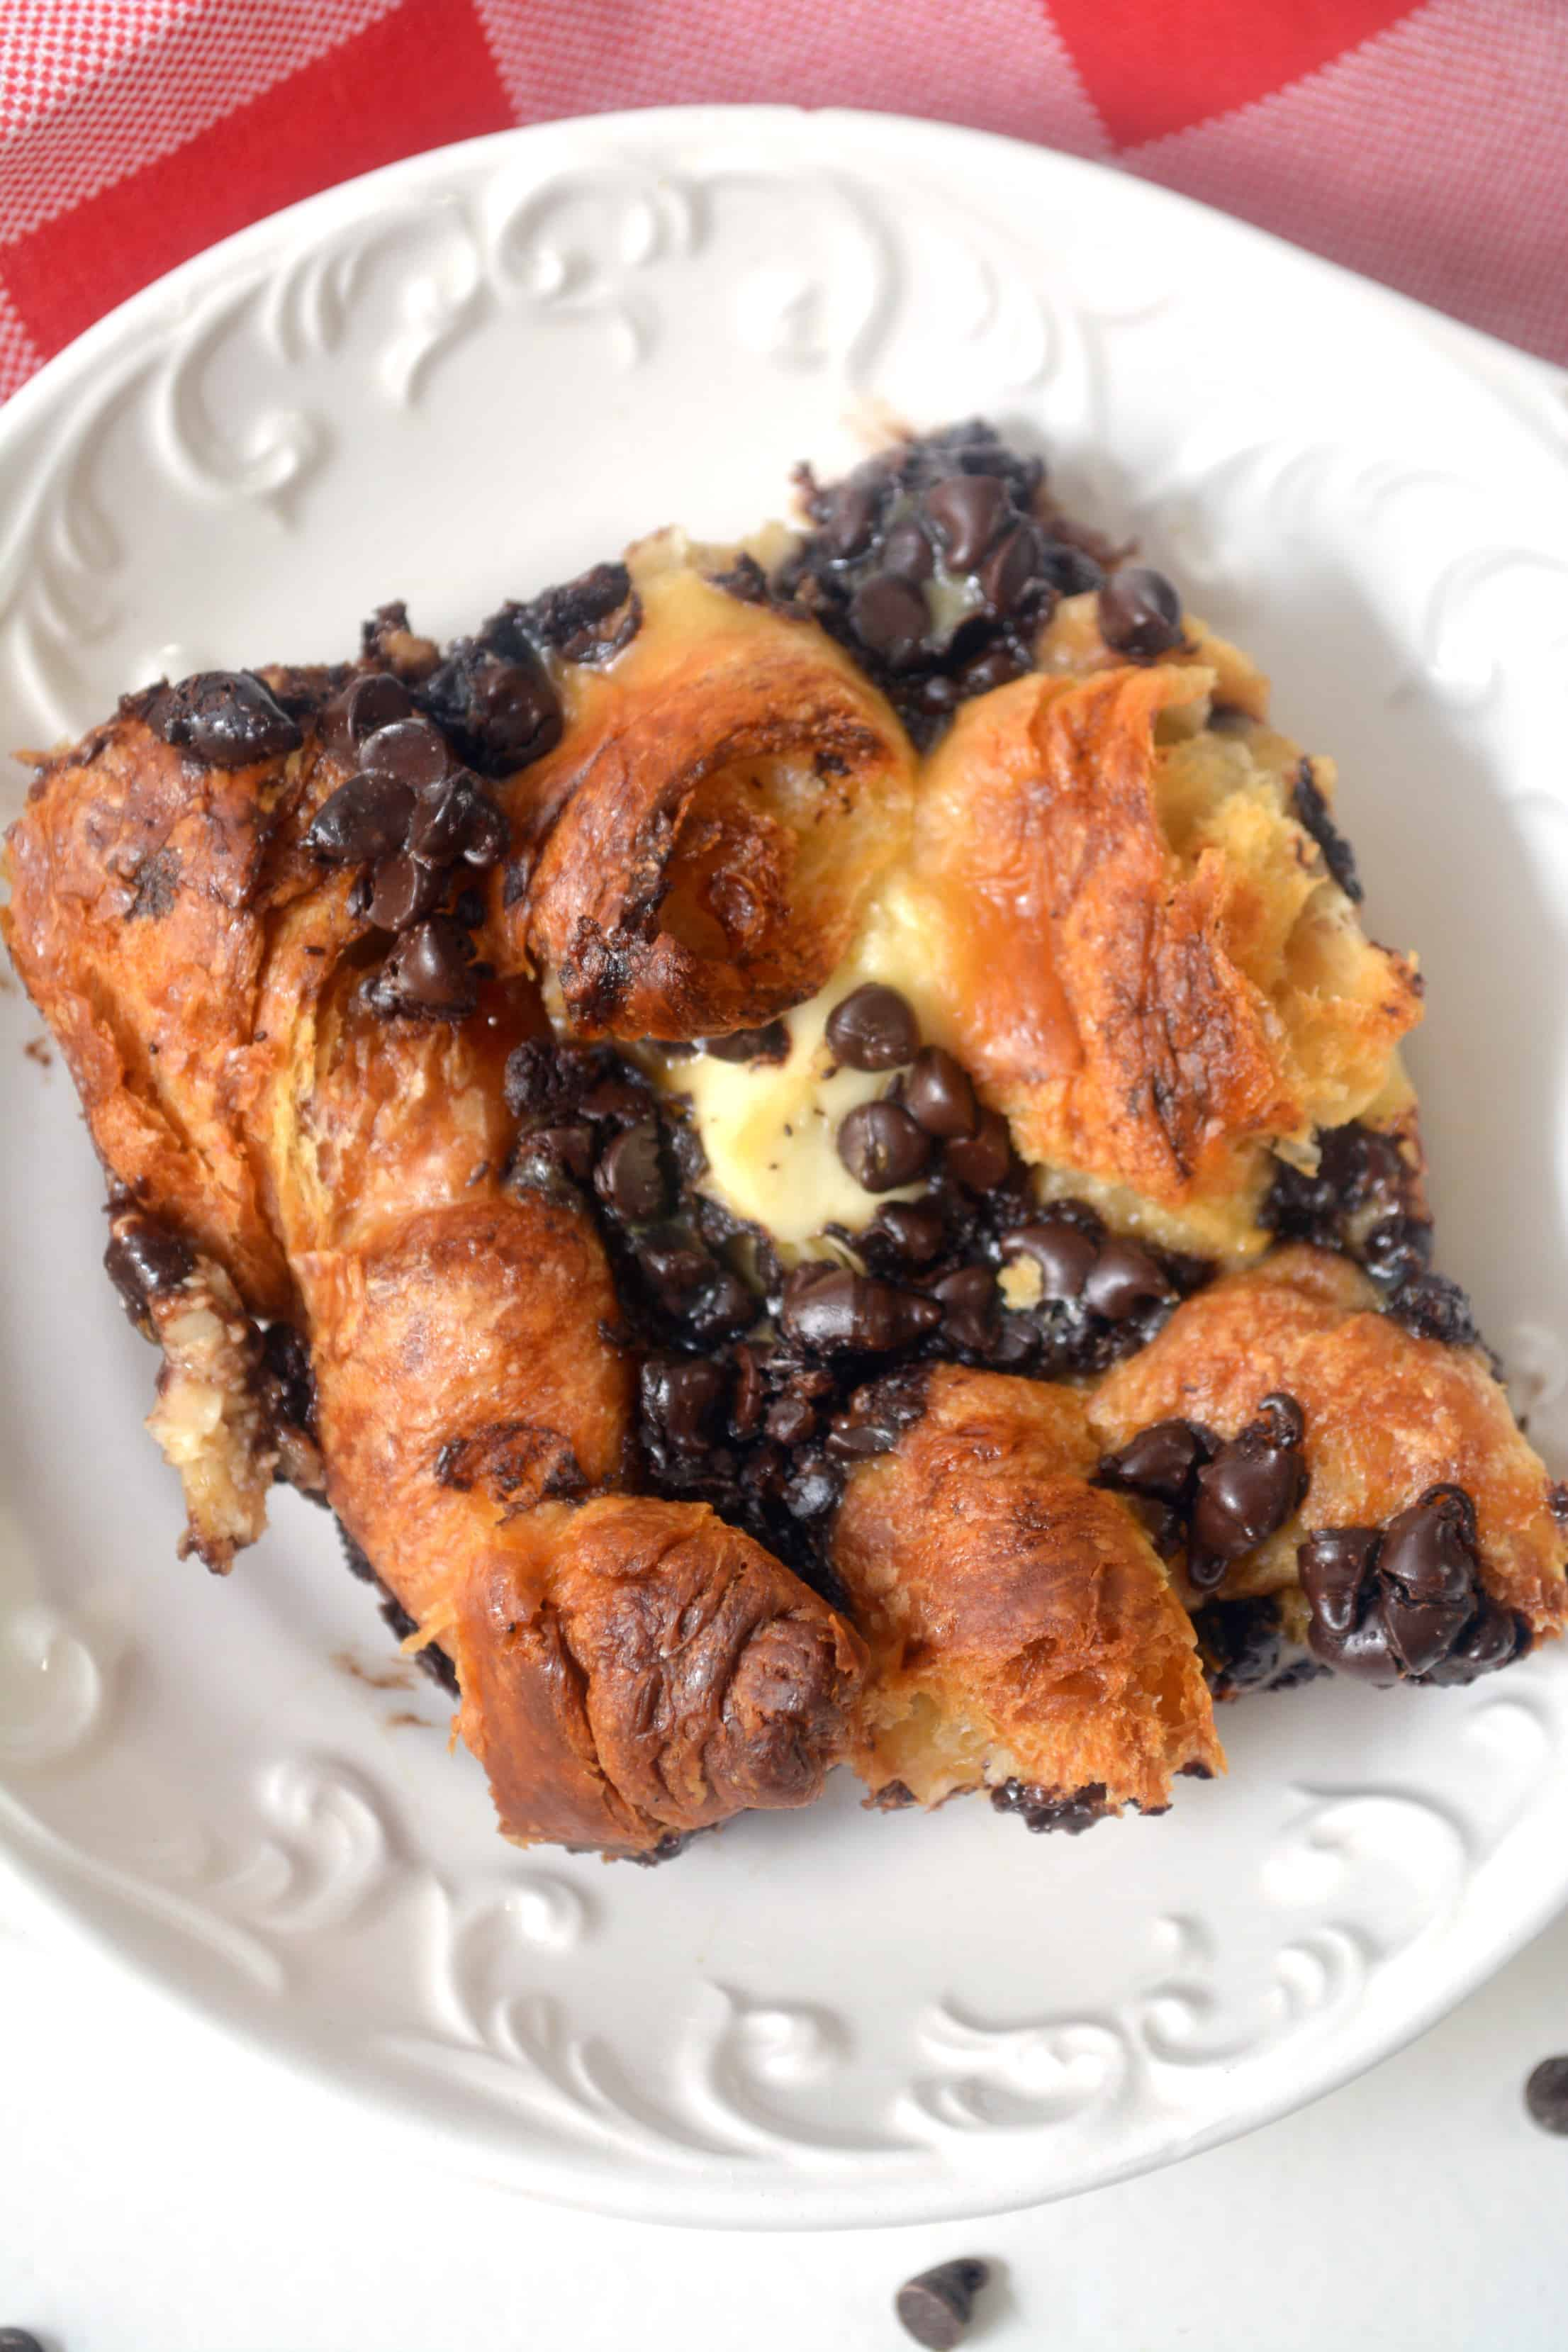 Sweet Breakfast Bake with Chocolate Croissants